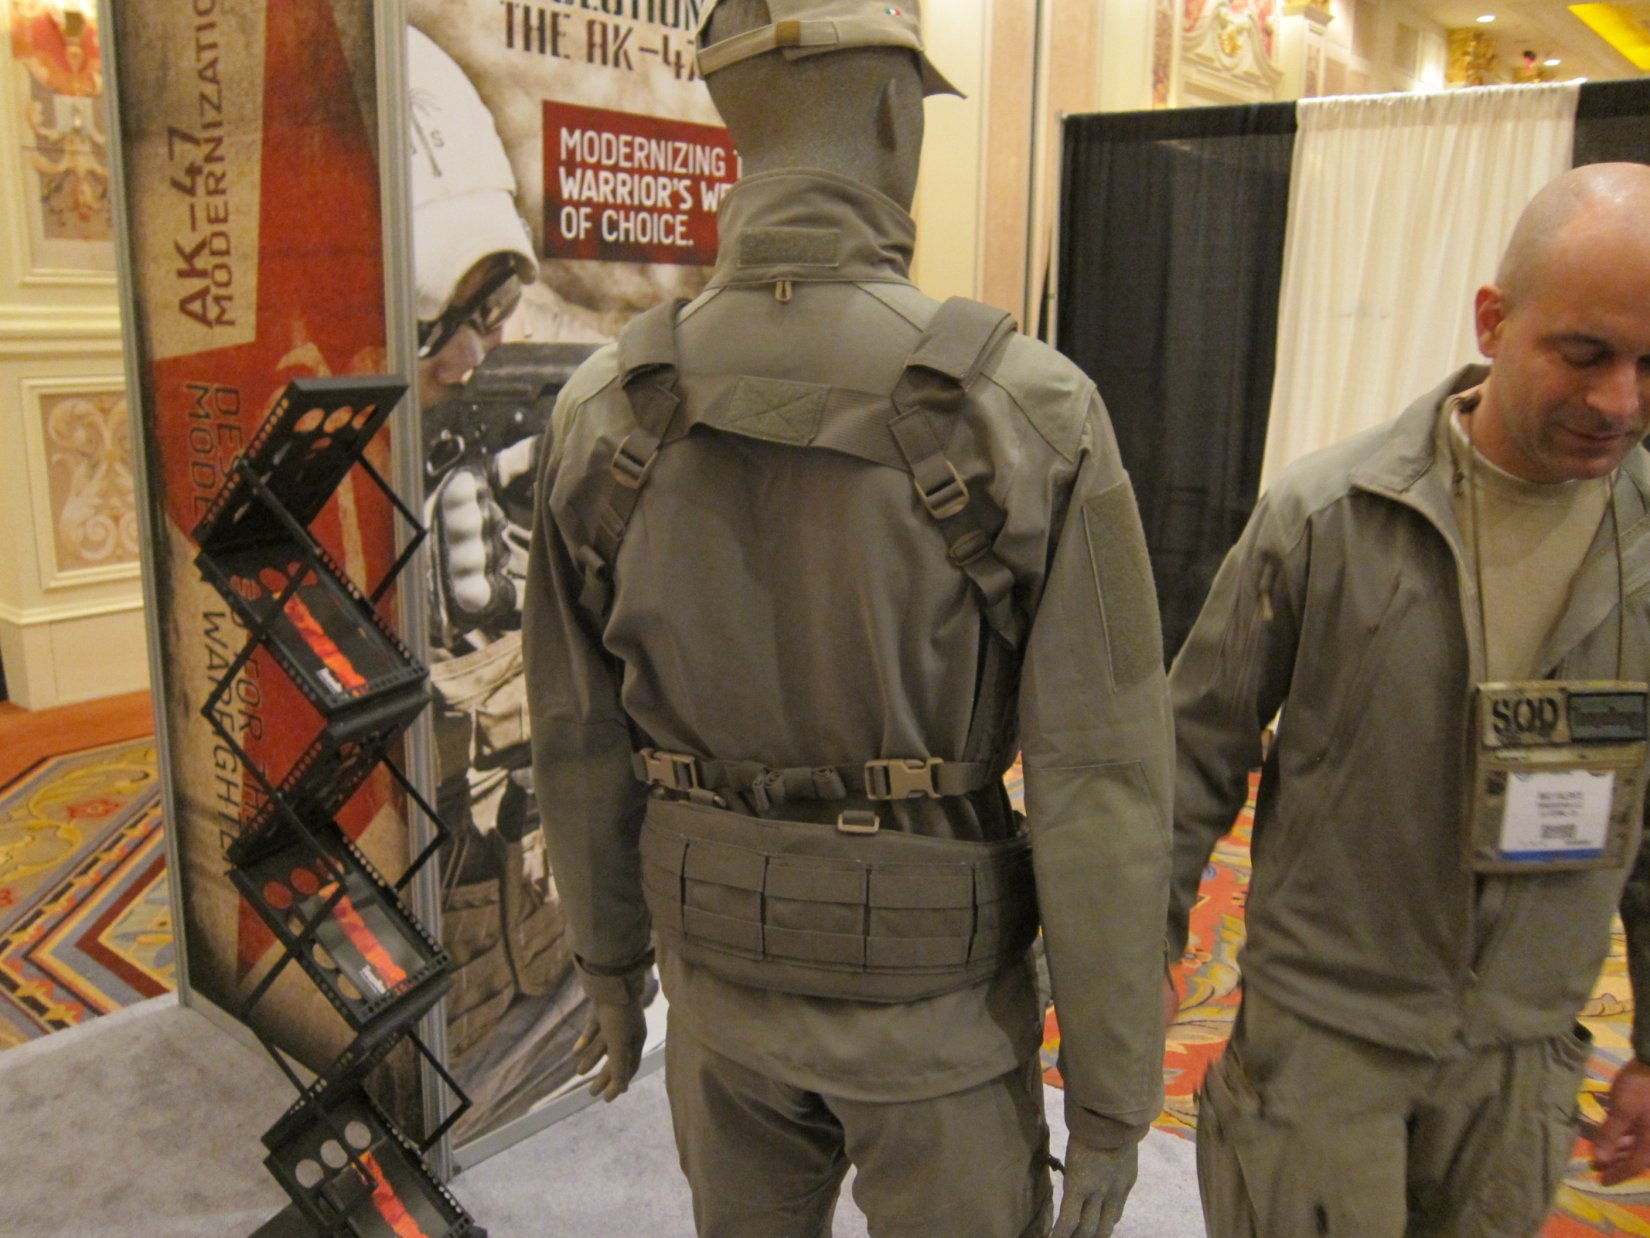 SOD Gear Special Operations Department Gear Max Valente Italian Tactical Combat Clothing TangoDown SHOT Show 2012 1 17 2012 DefenseReview.com DR 4 SOD Gear/SOD USA Stealth ADP Battle Jacket and Pants Made with Schoeller Performance Fabric: High Tech Combat Clothing for Military Special Operations Forces (SOF) and Civilian Tactical Shooters